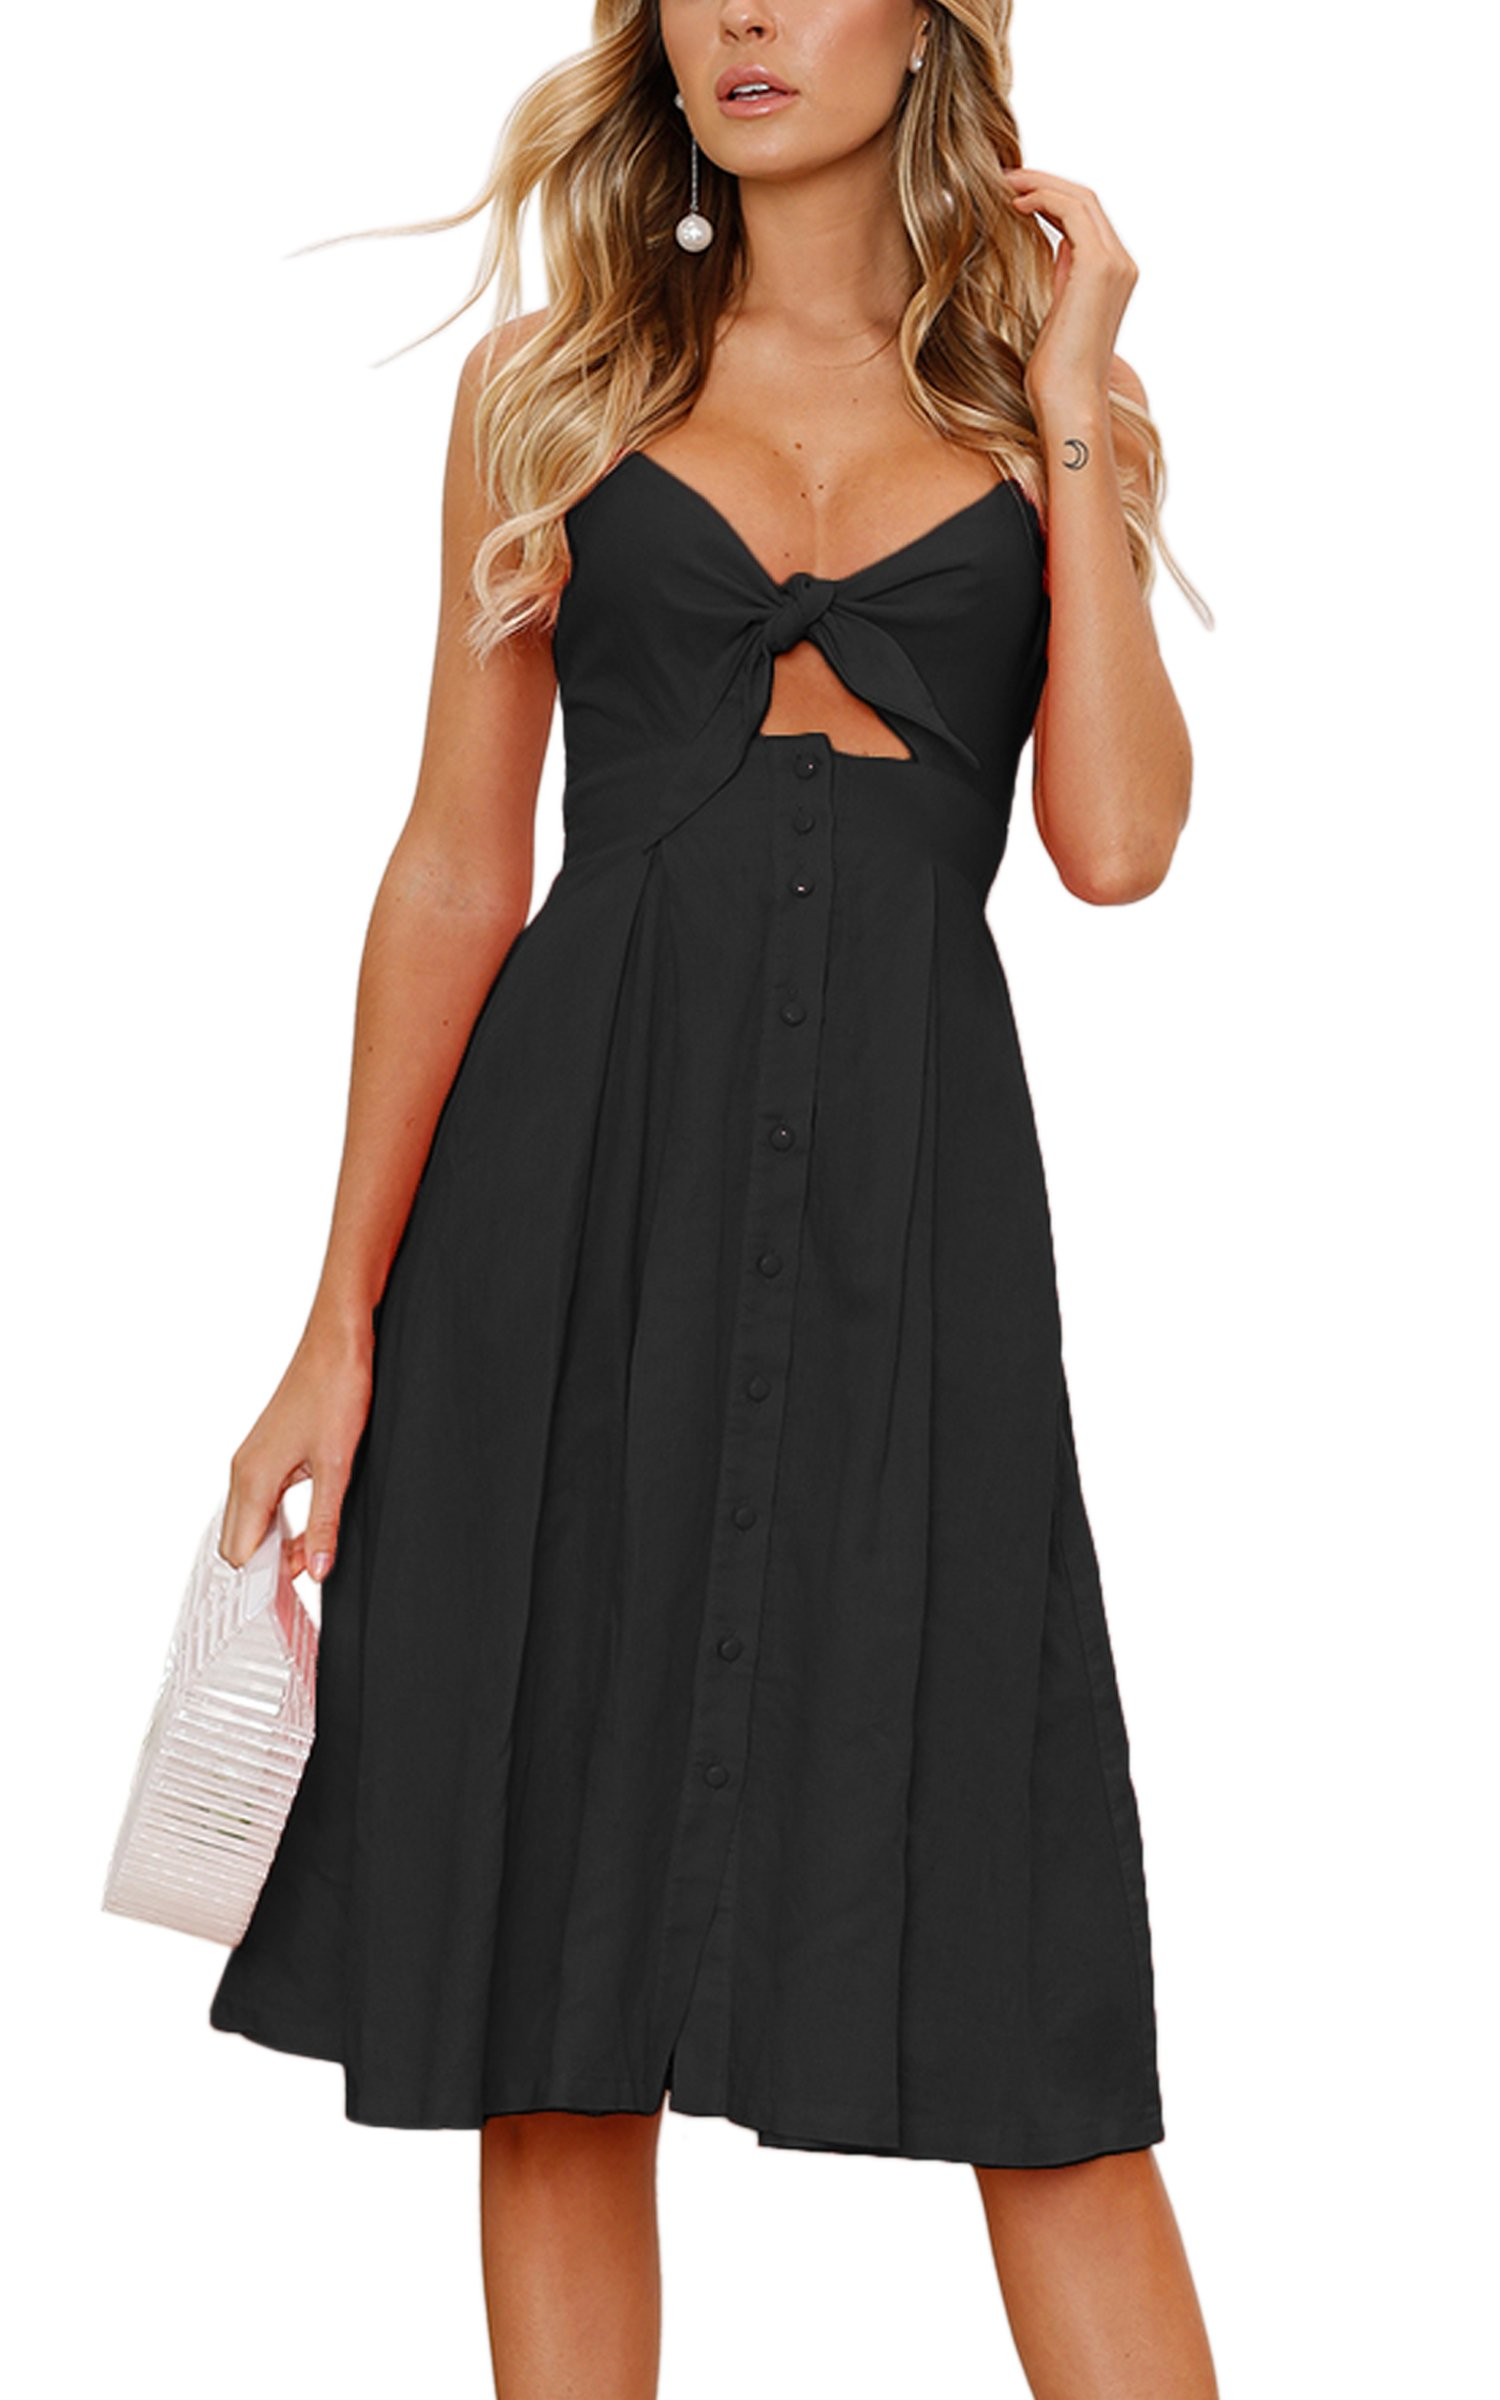 ECOWISH Womens Dresses Summer Tie Front V-Neck Spaghetti Strap Button Down A-Line Backless Swing Midi Dress Black L